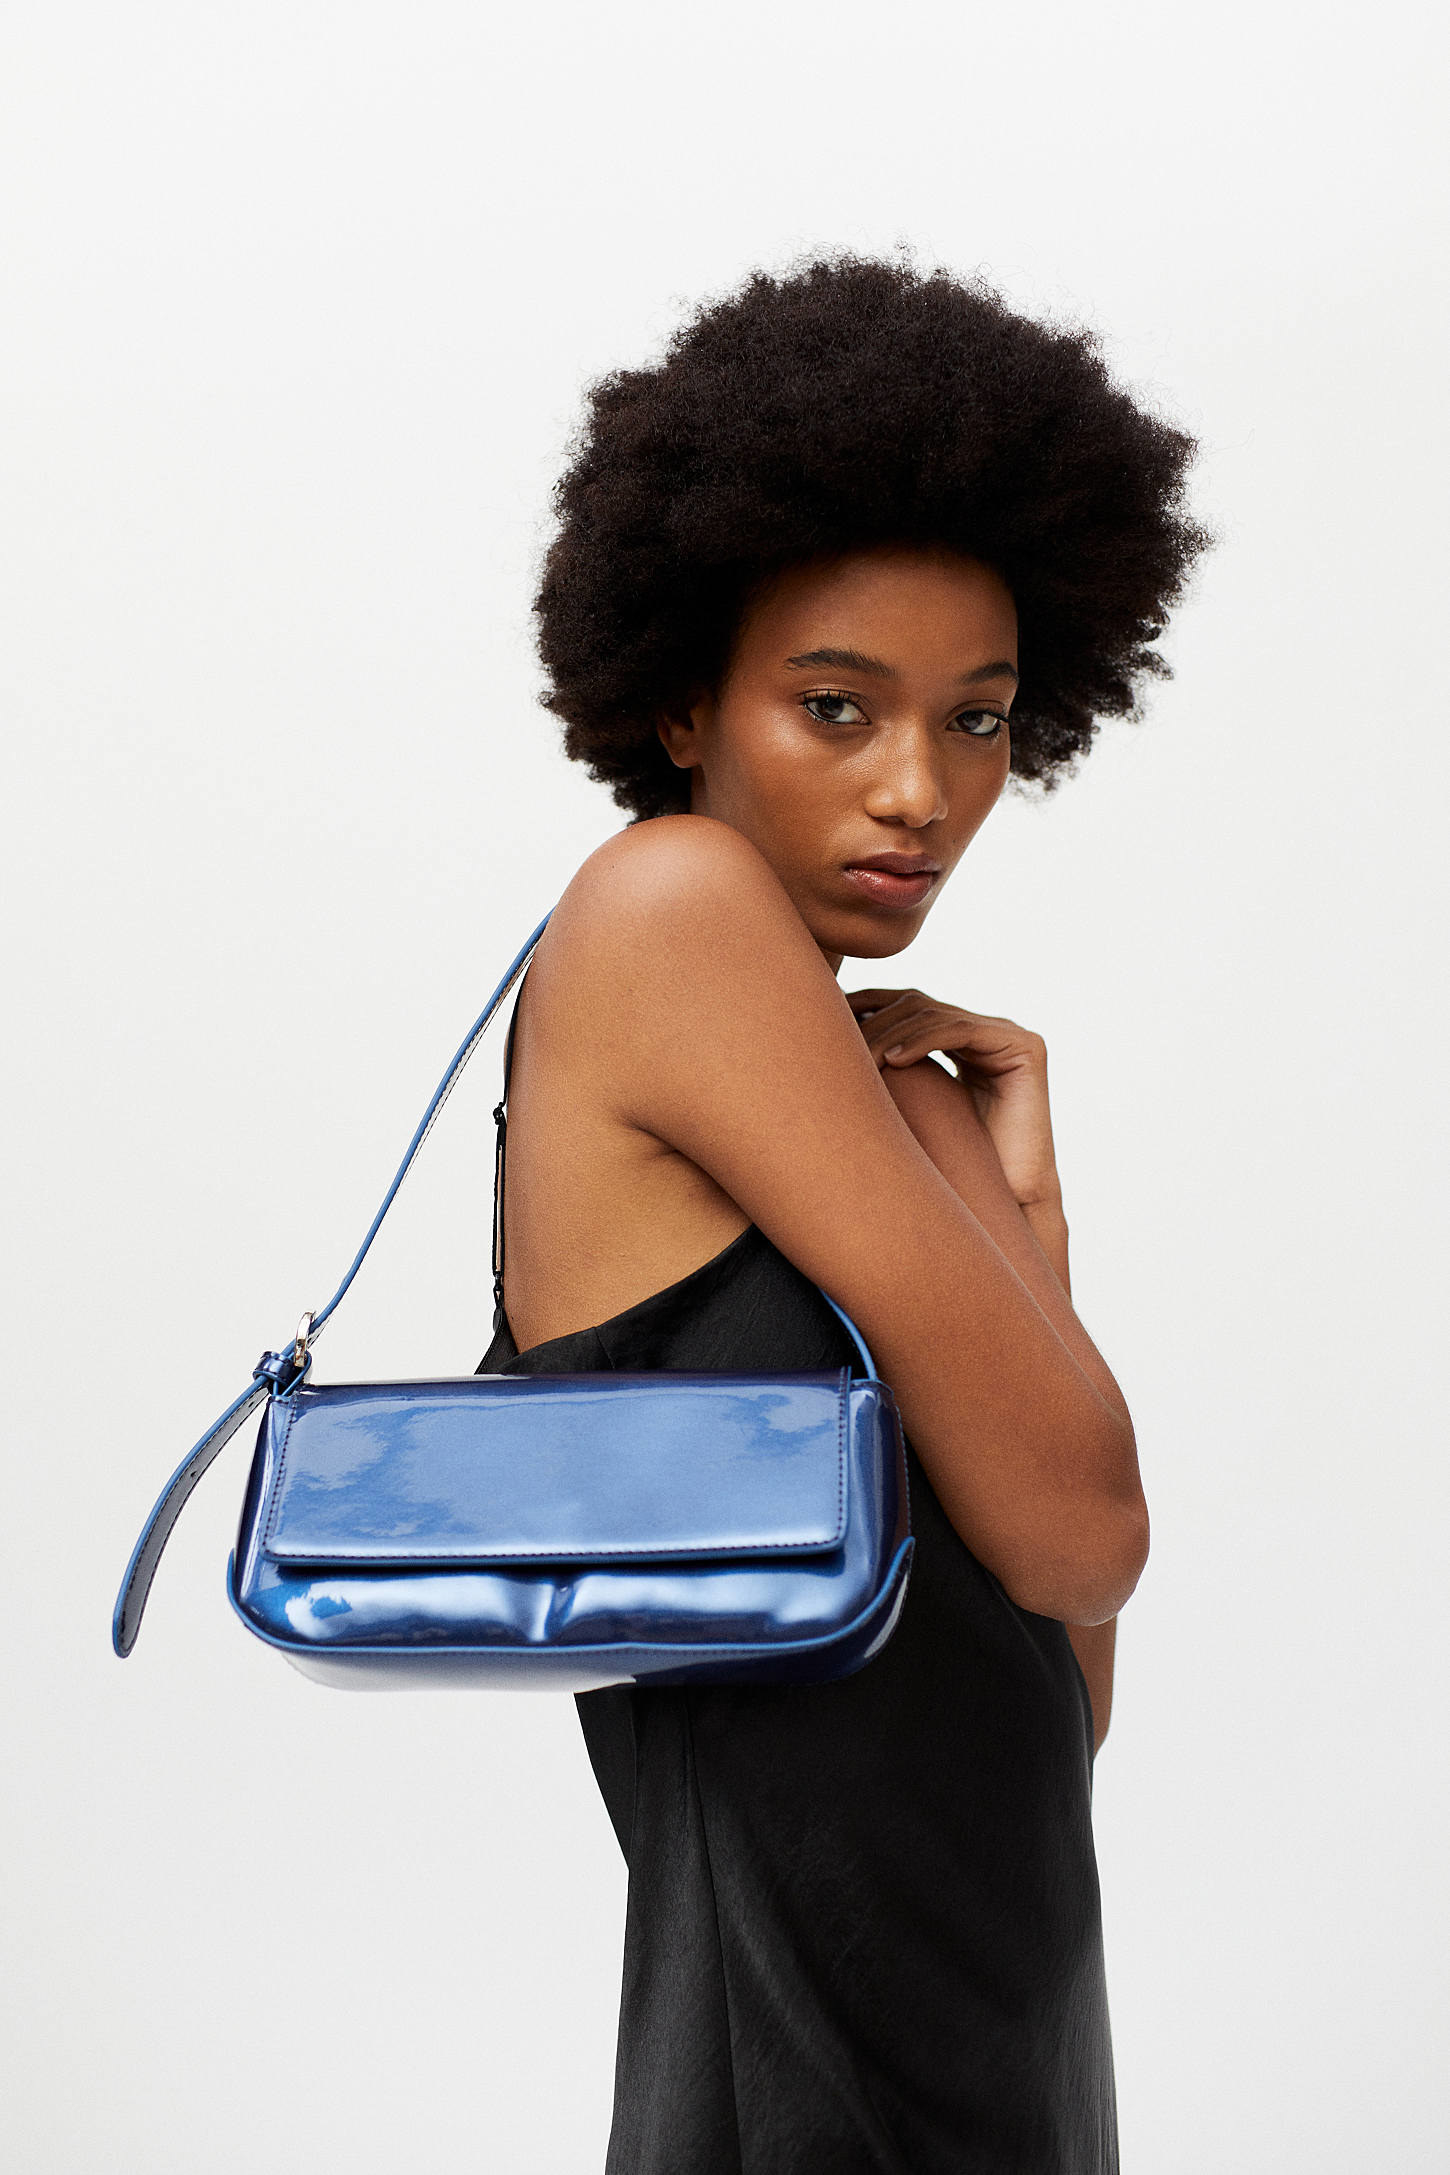 A person holding the shoulder bag